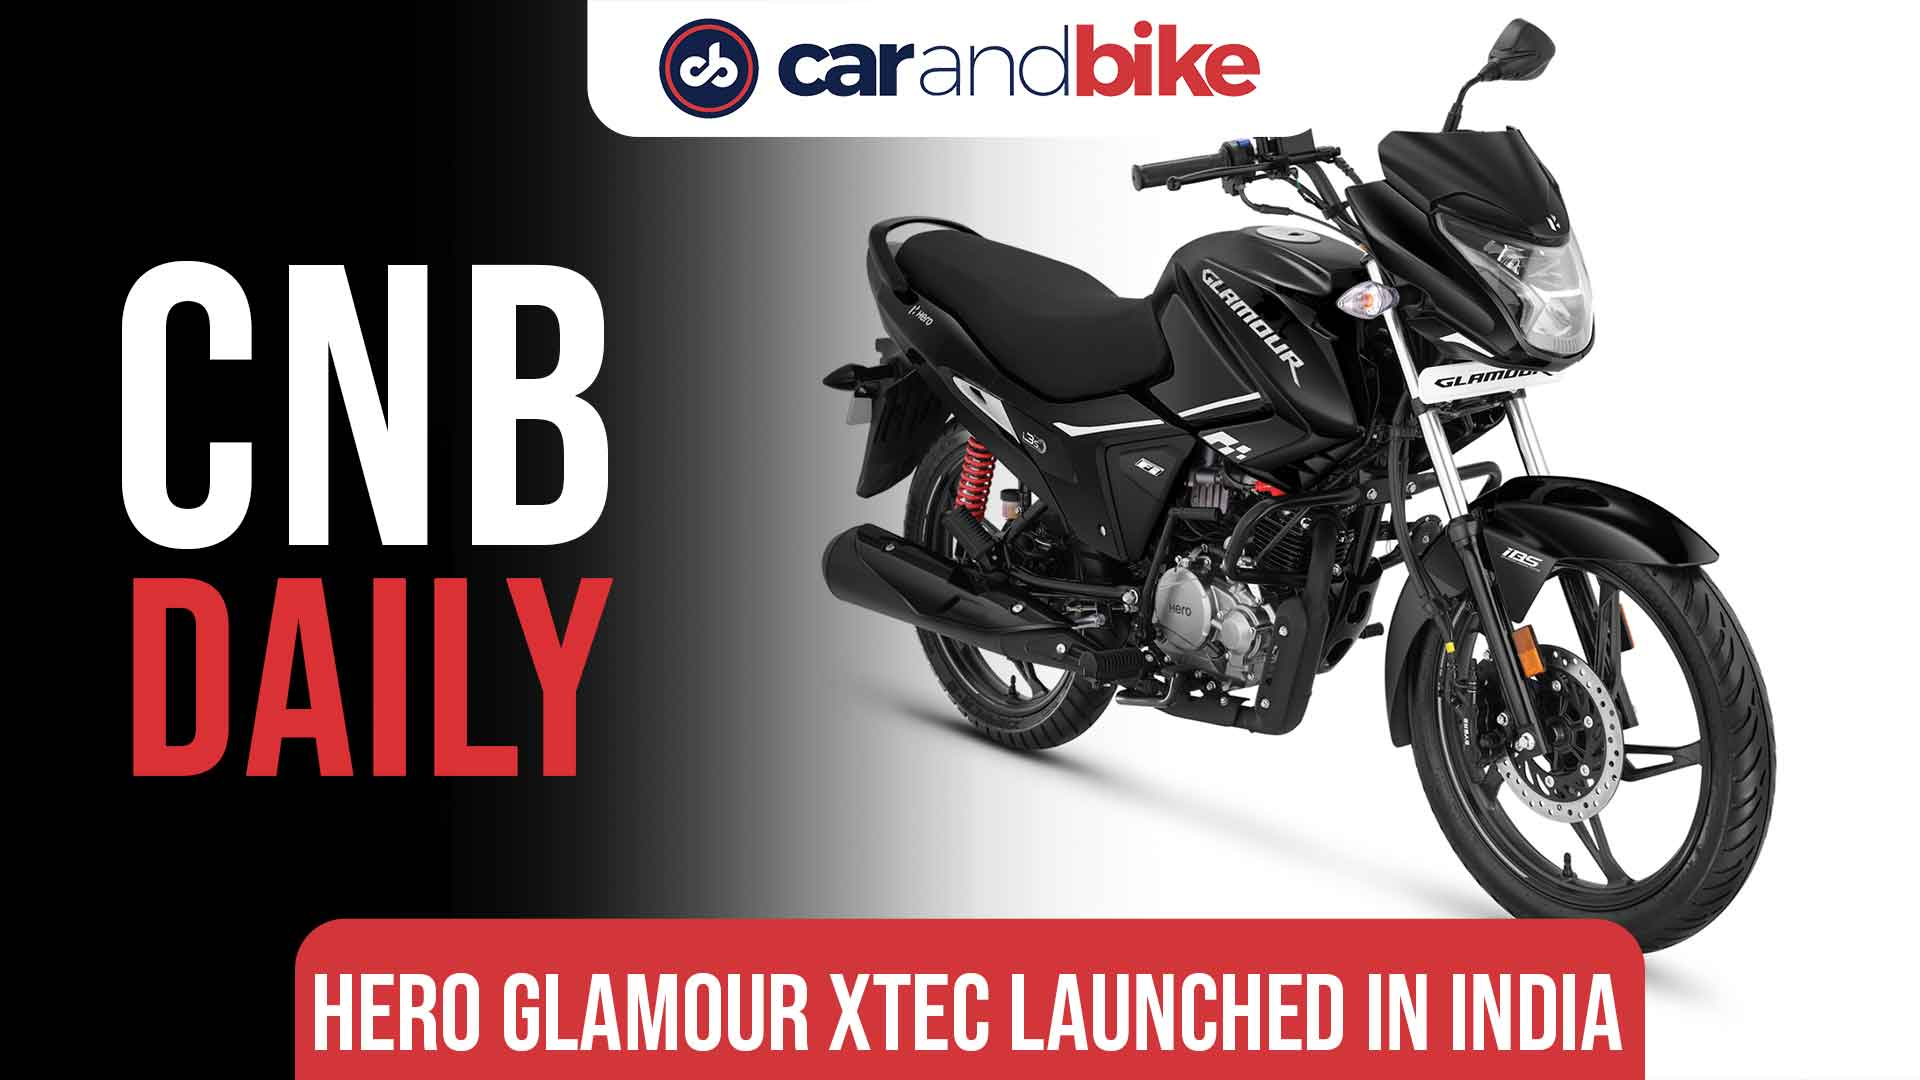 Hero Glamour XTEC launched in India